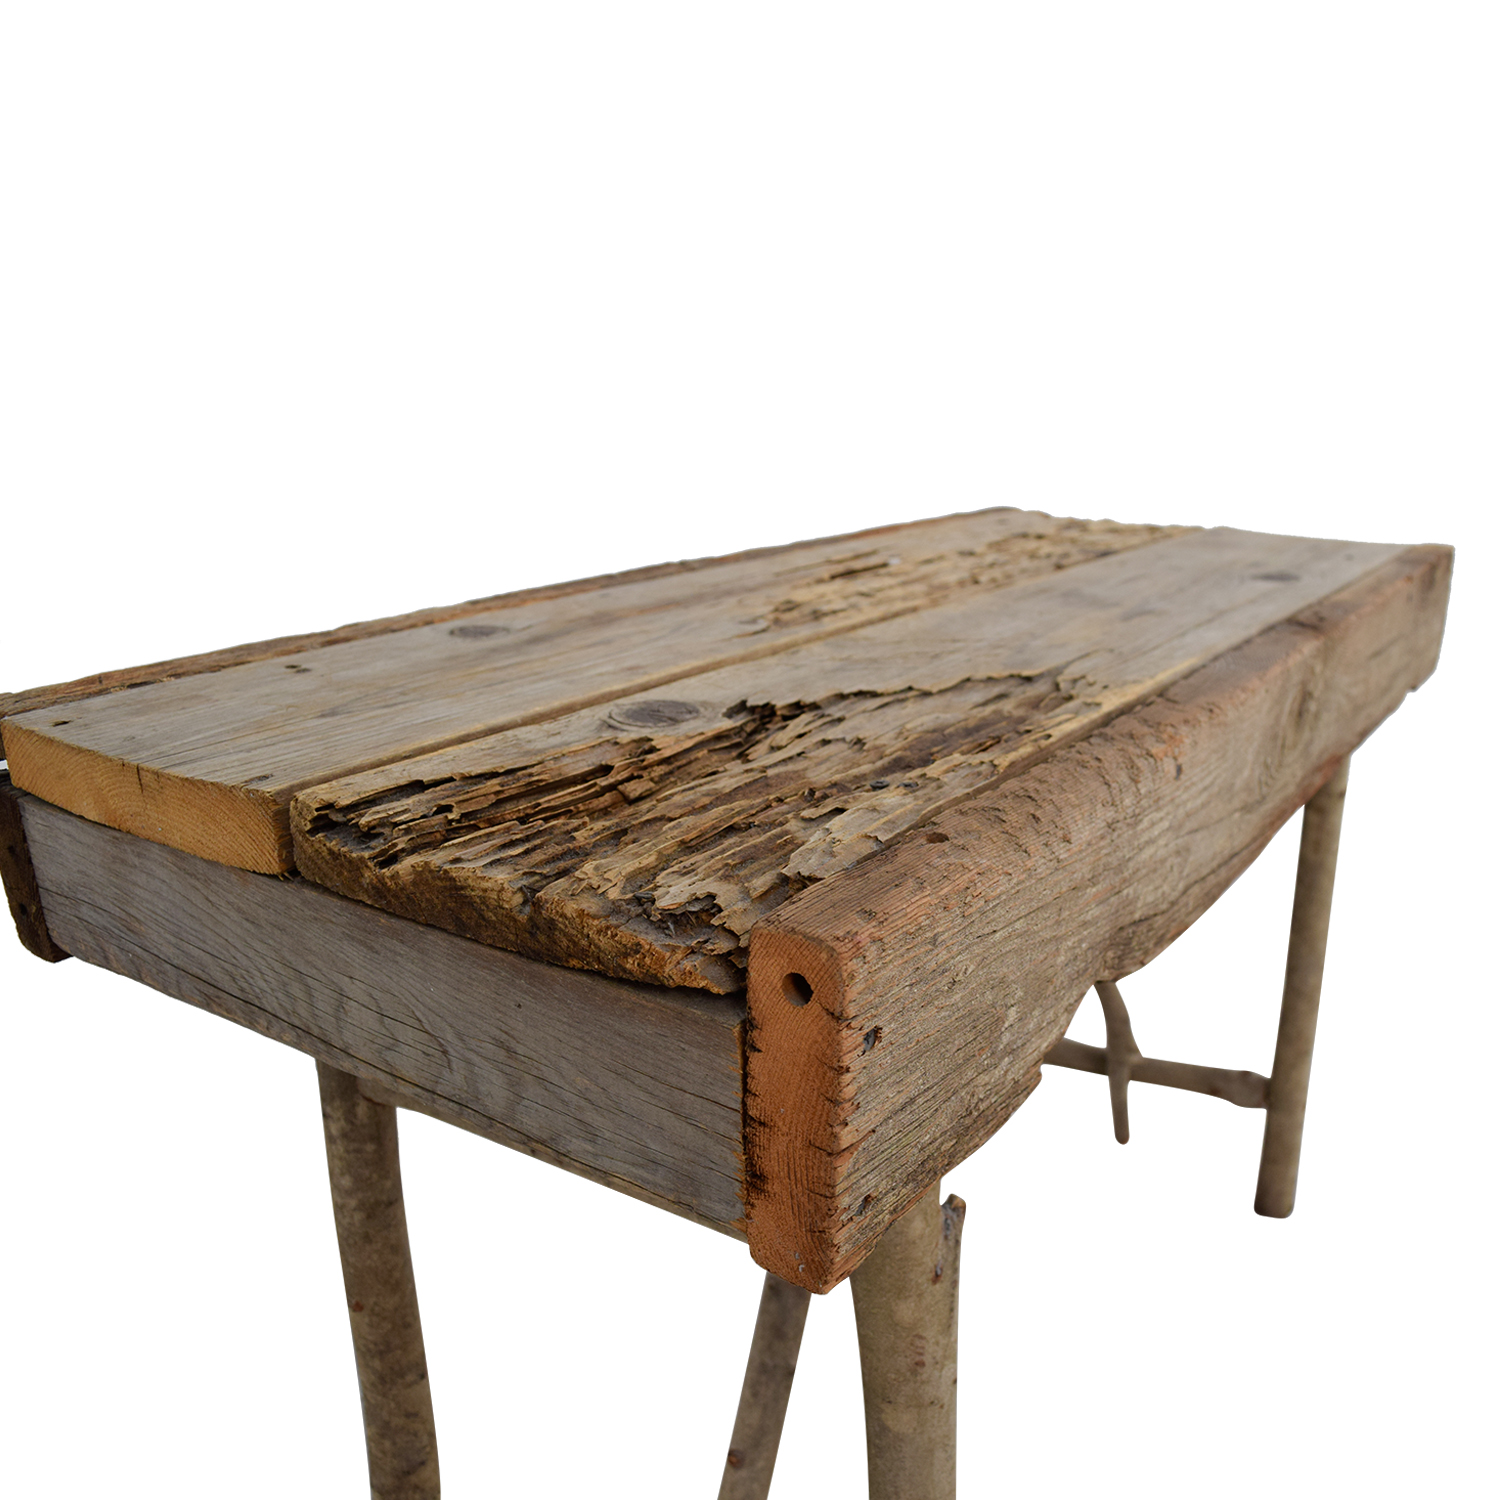 Pier 1 Pier 1 Imports Rustic Wood TV Table / Tables